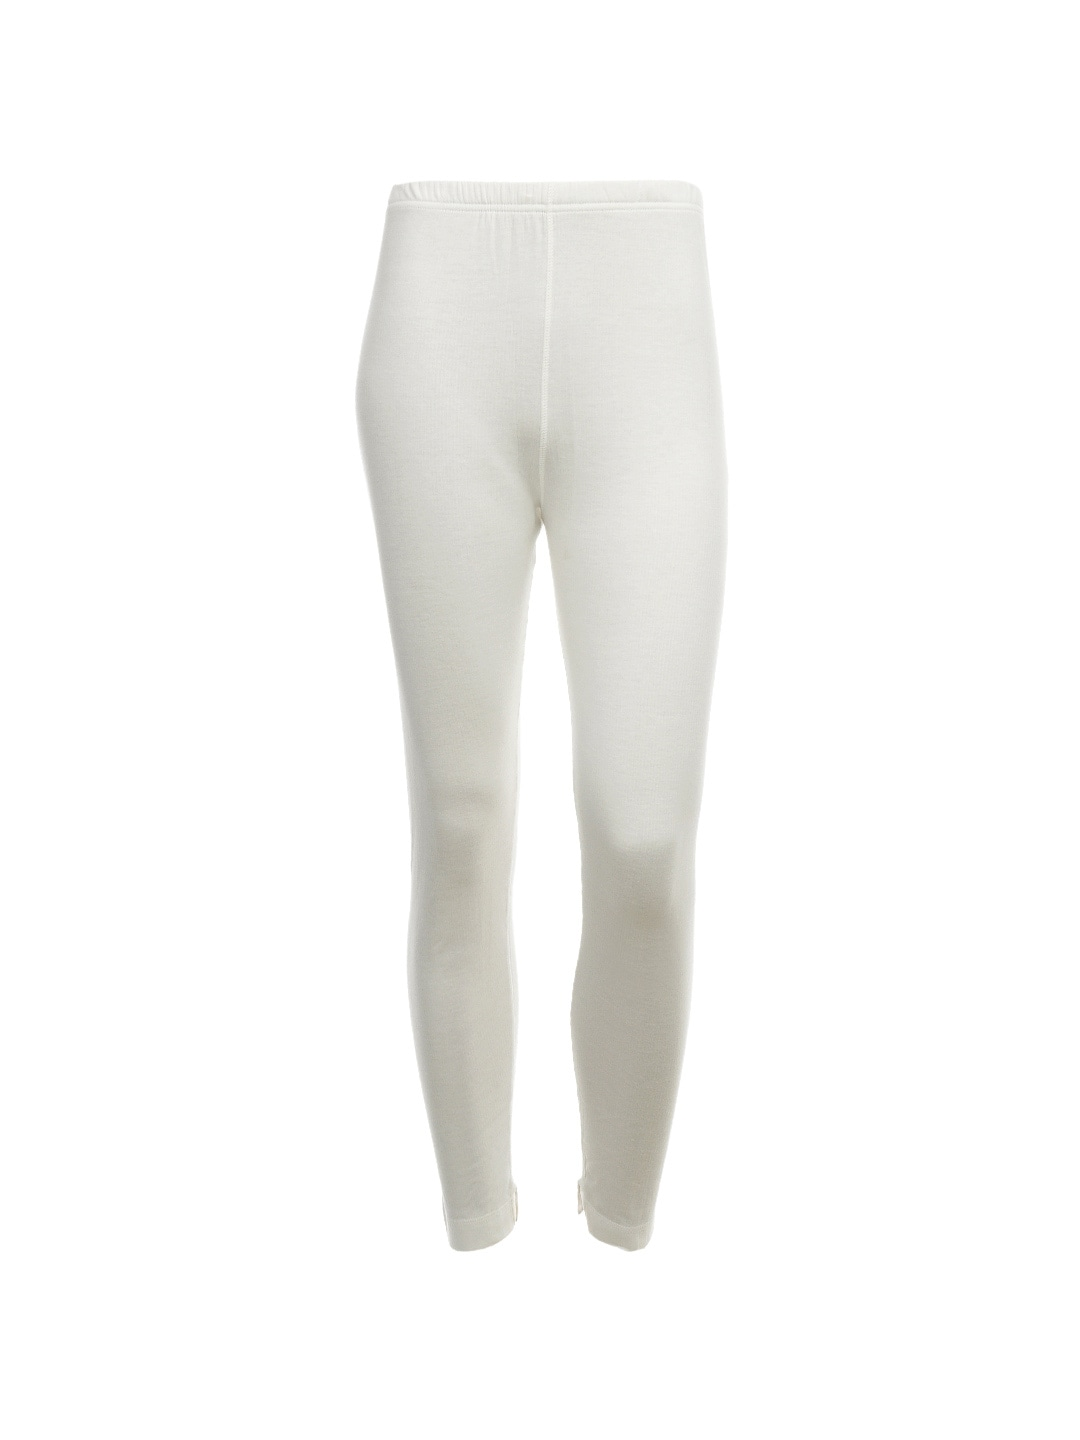 Jockey Women Cream Thermal Leggings